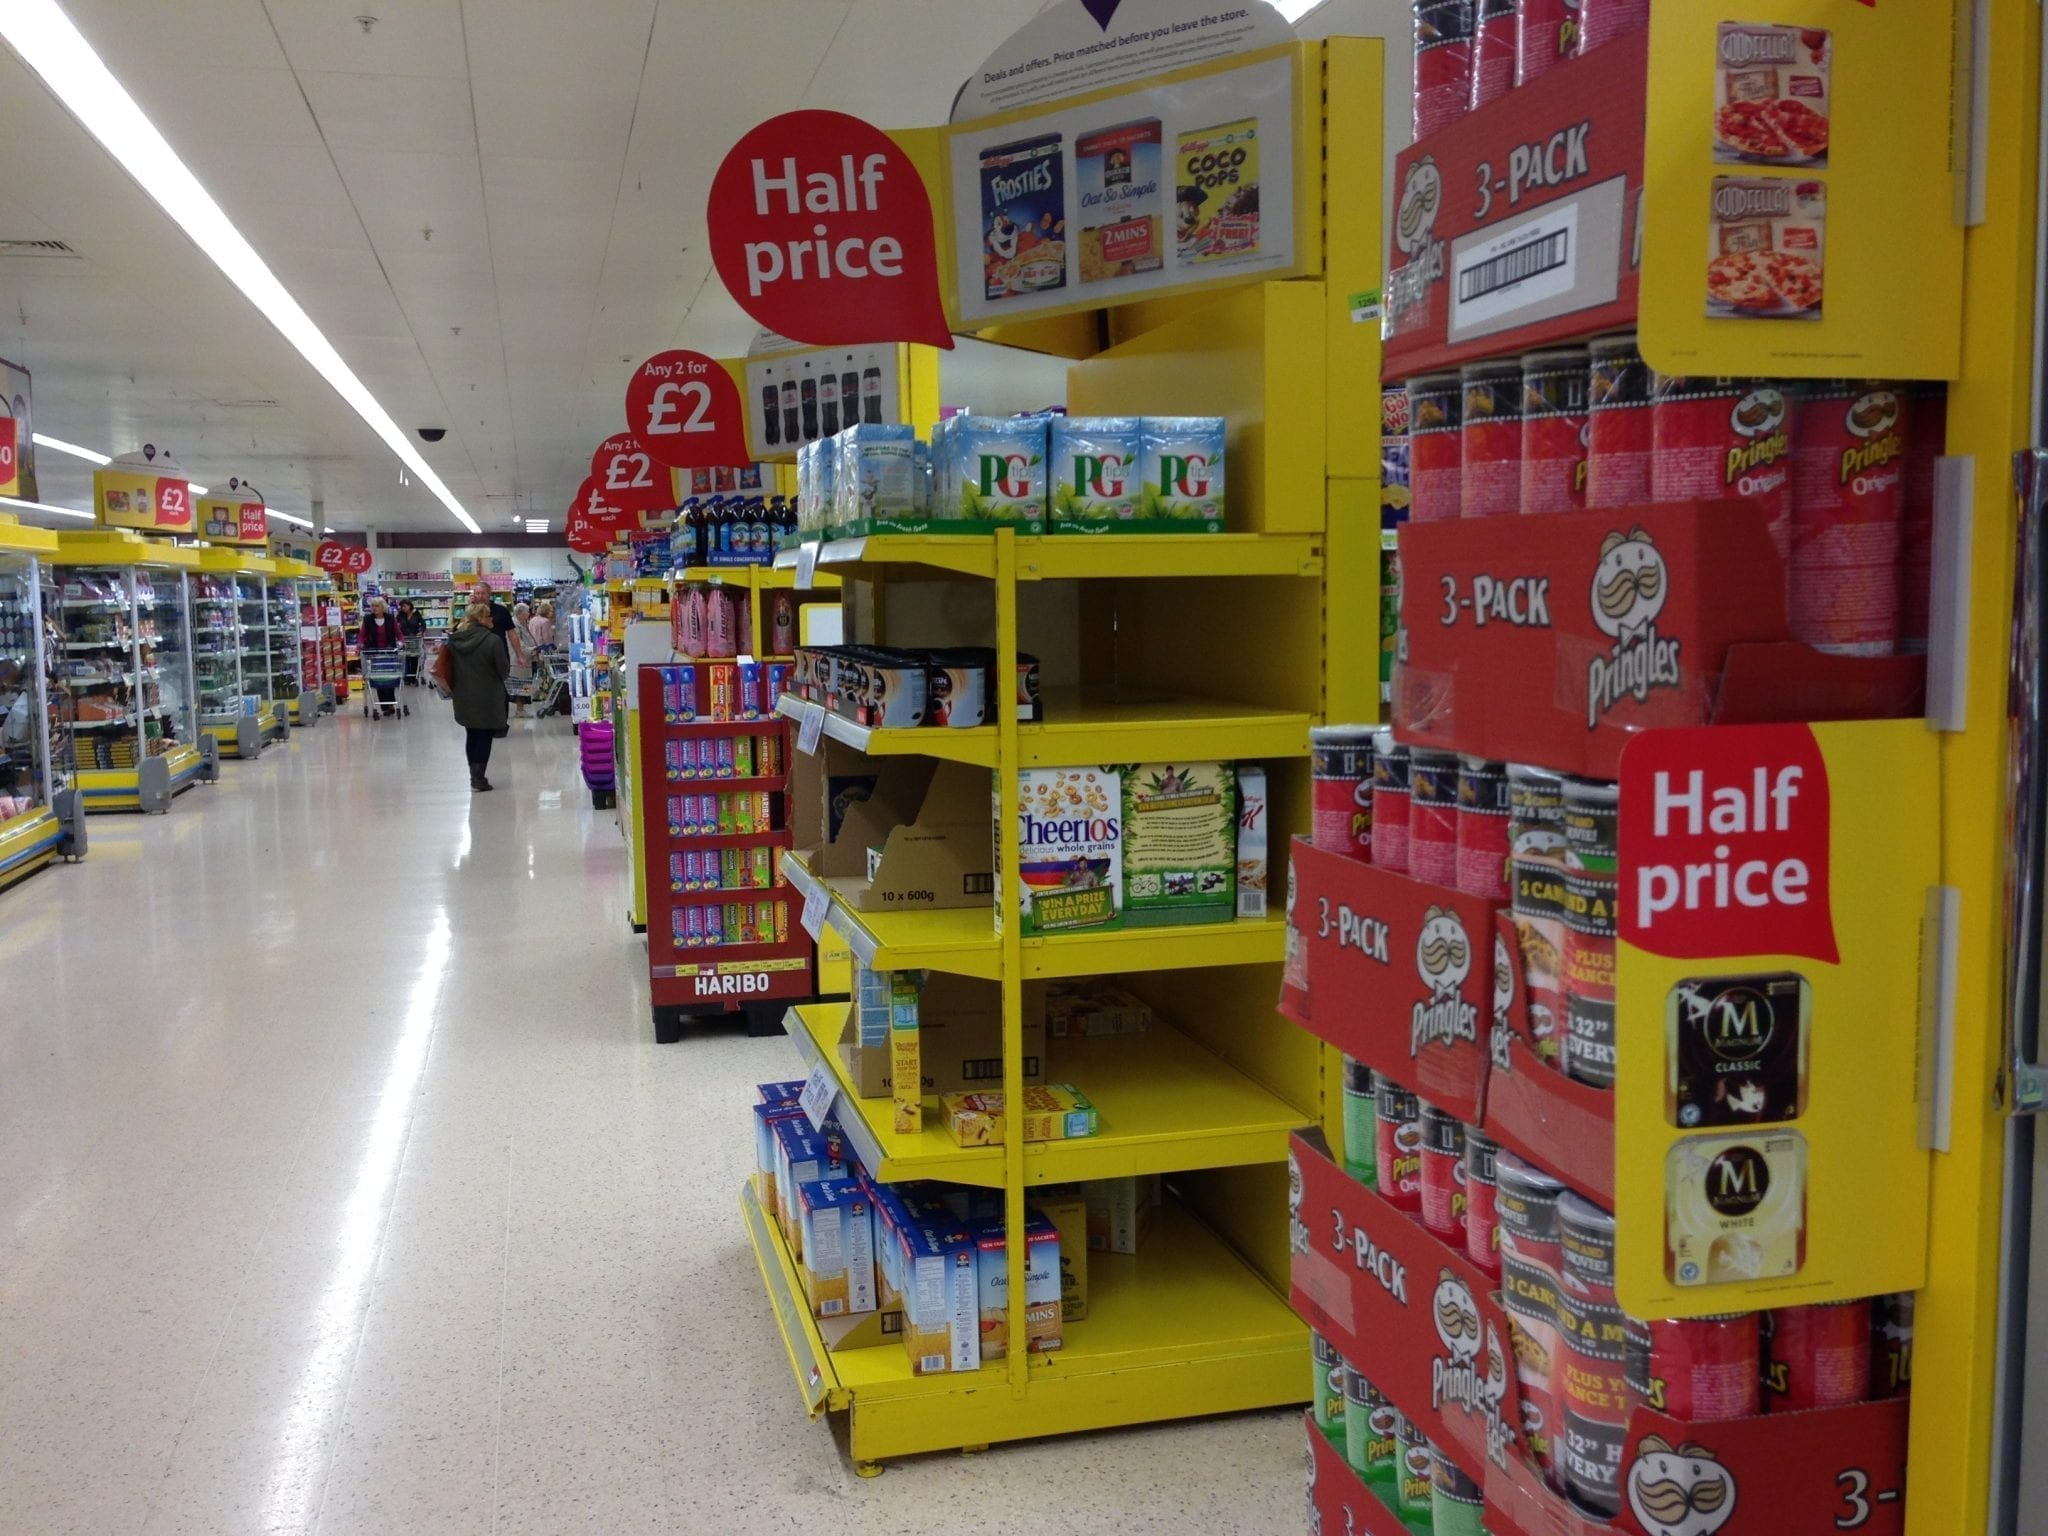 Picture of tesco aisle